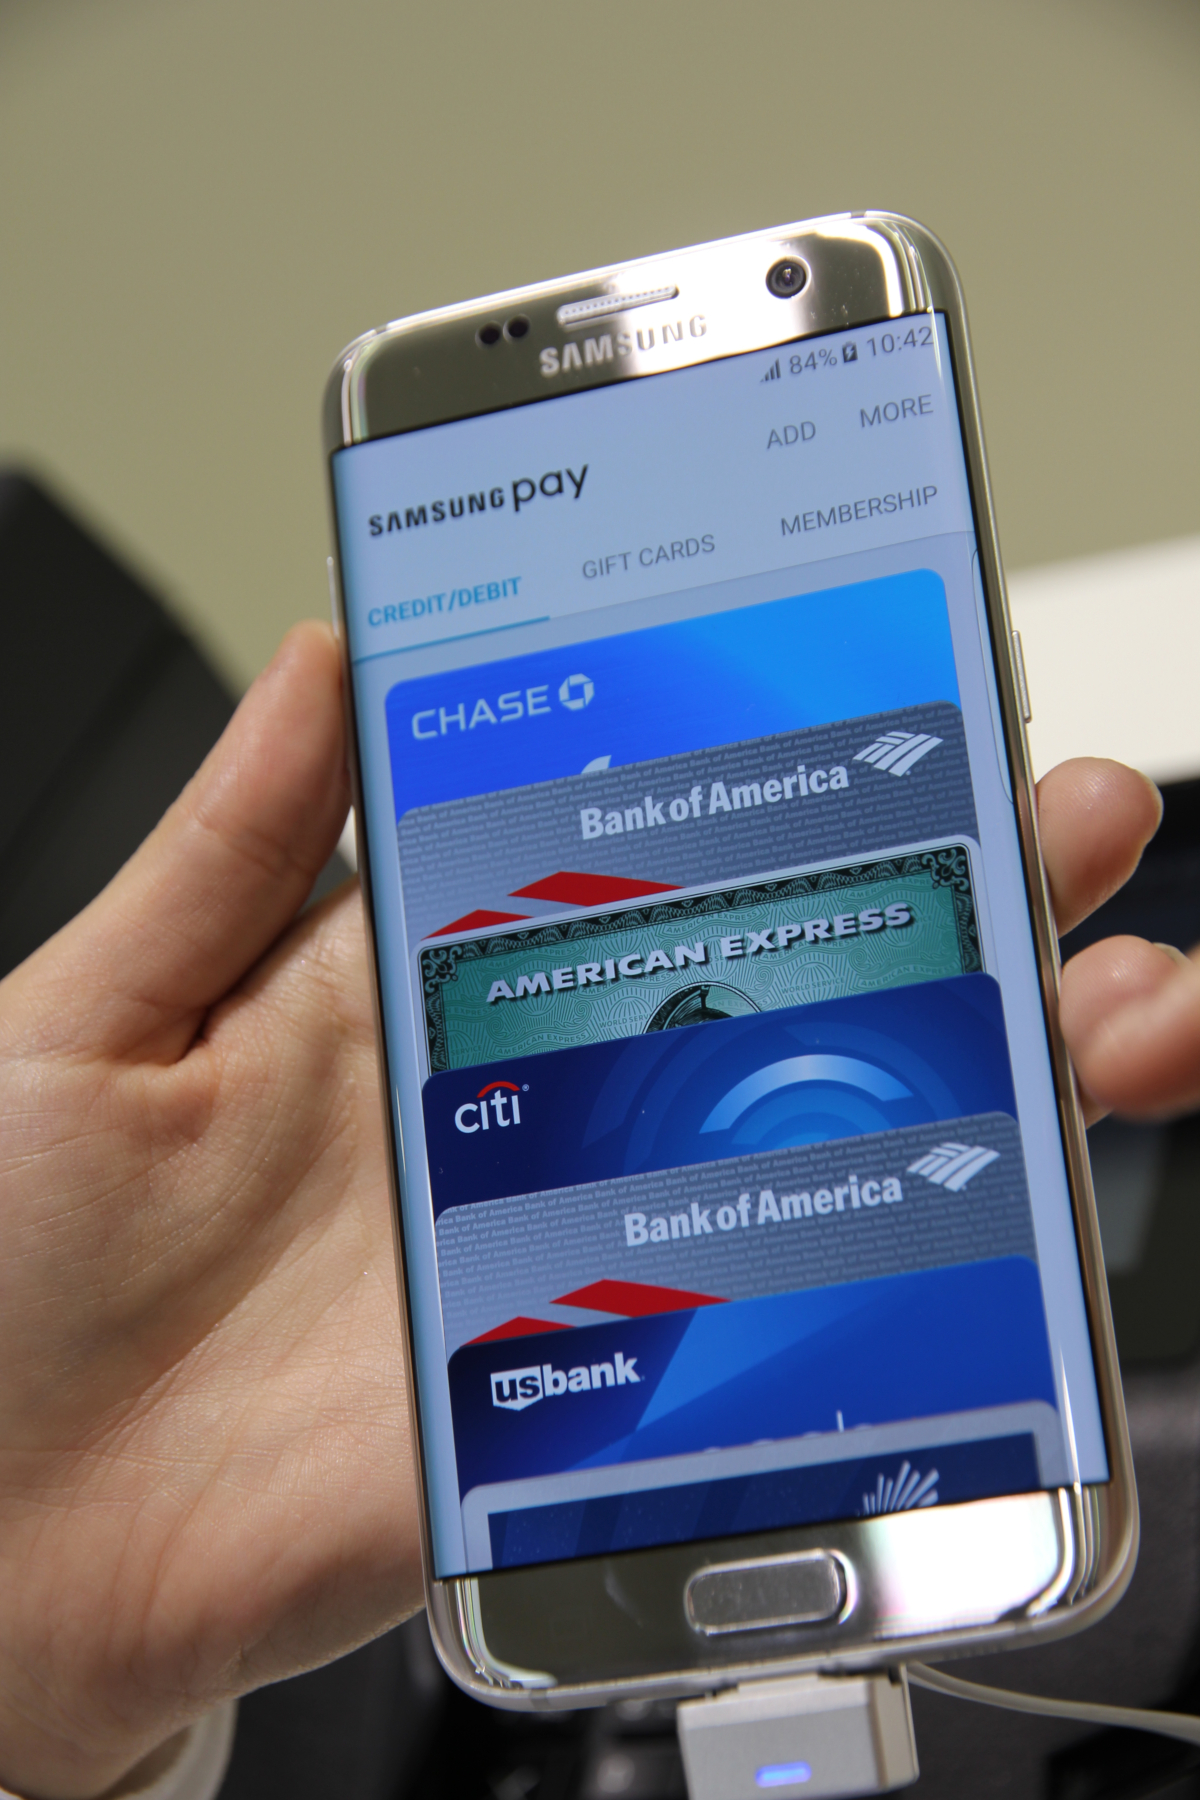 Samsung Pay app presented at Mobile World Congress 2016, Barcelona (credits: Pierre Metivier / Flickr Creative Commons Attribution-NonCommercial 2.0 Generic (CC BY-NC 2.0))